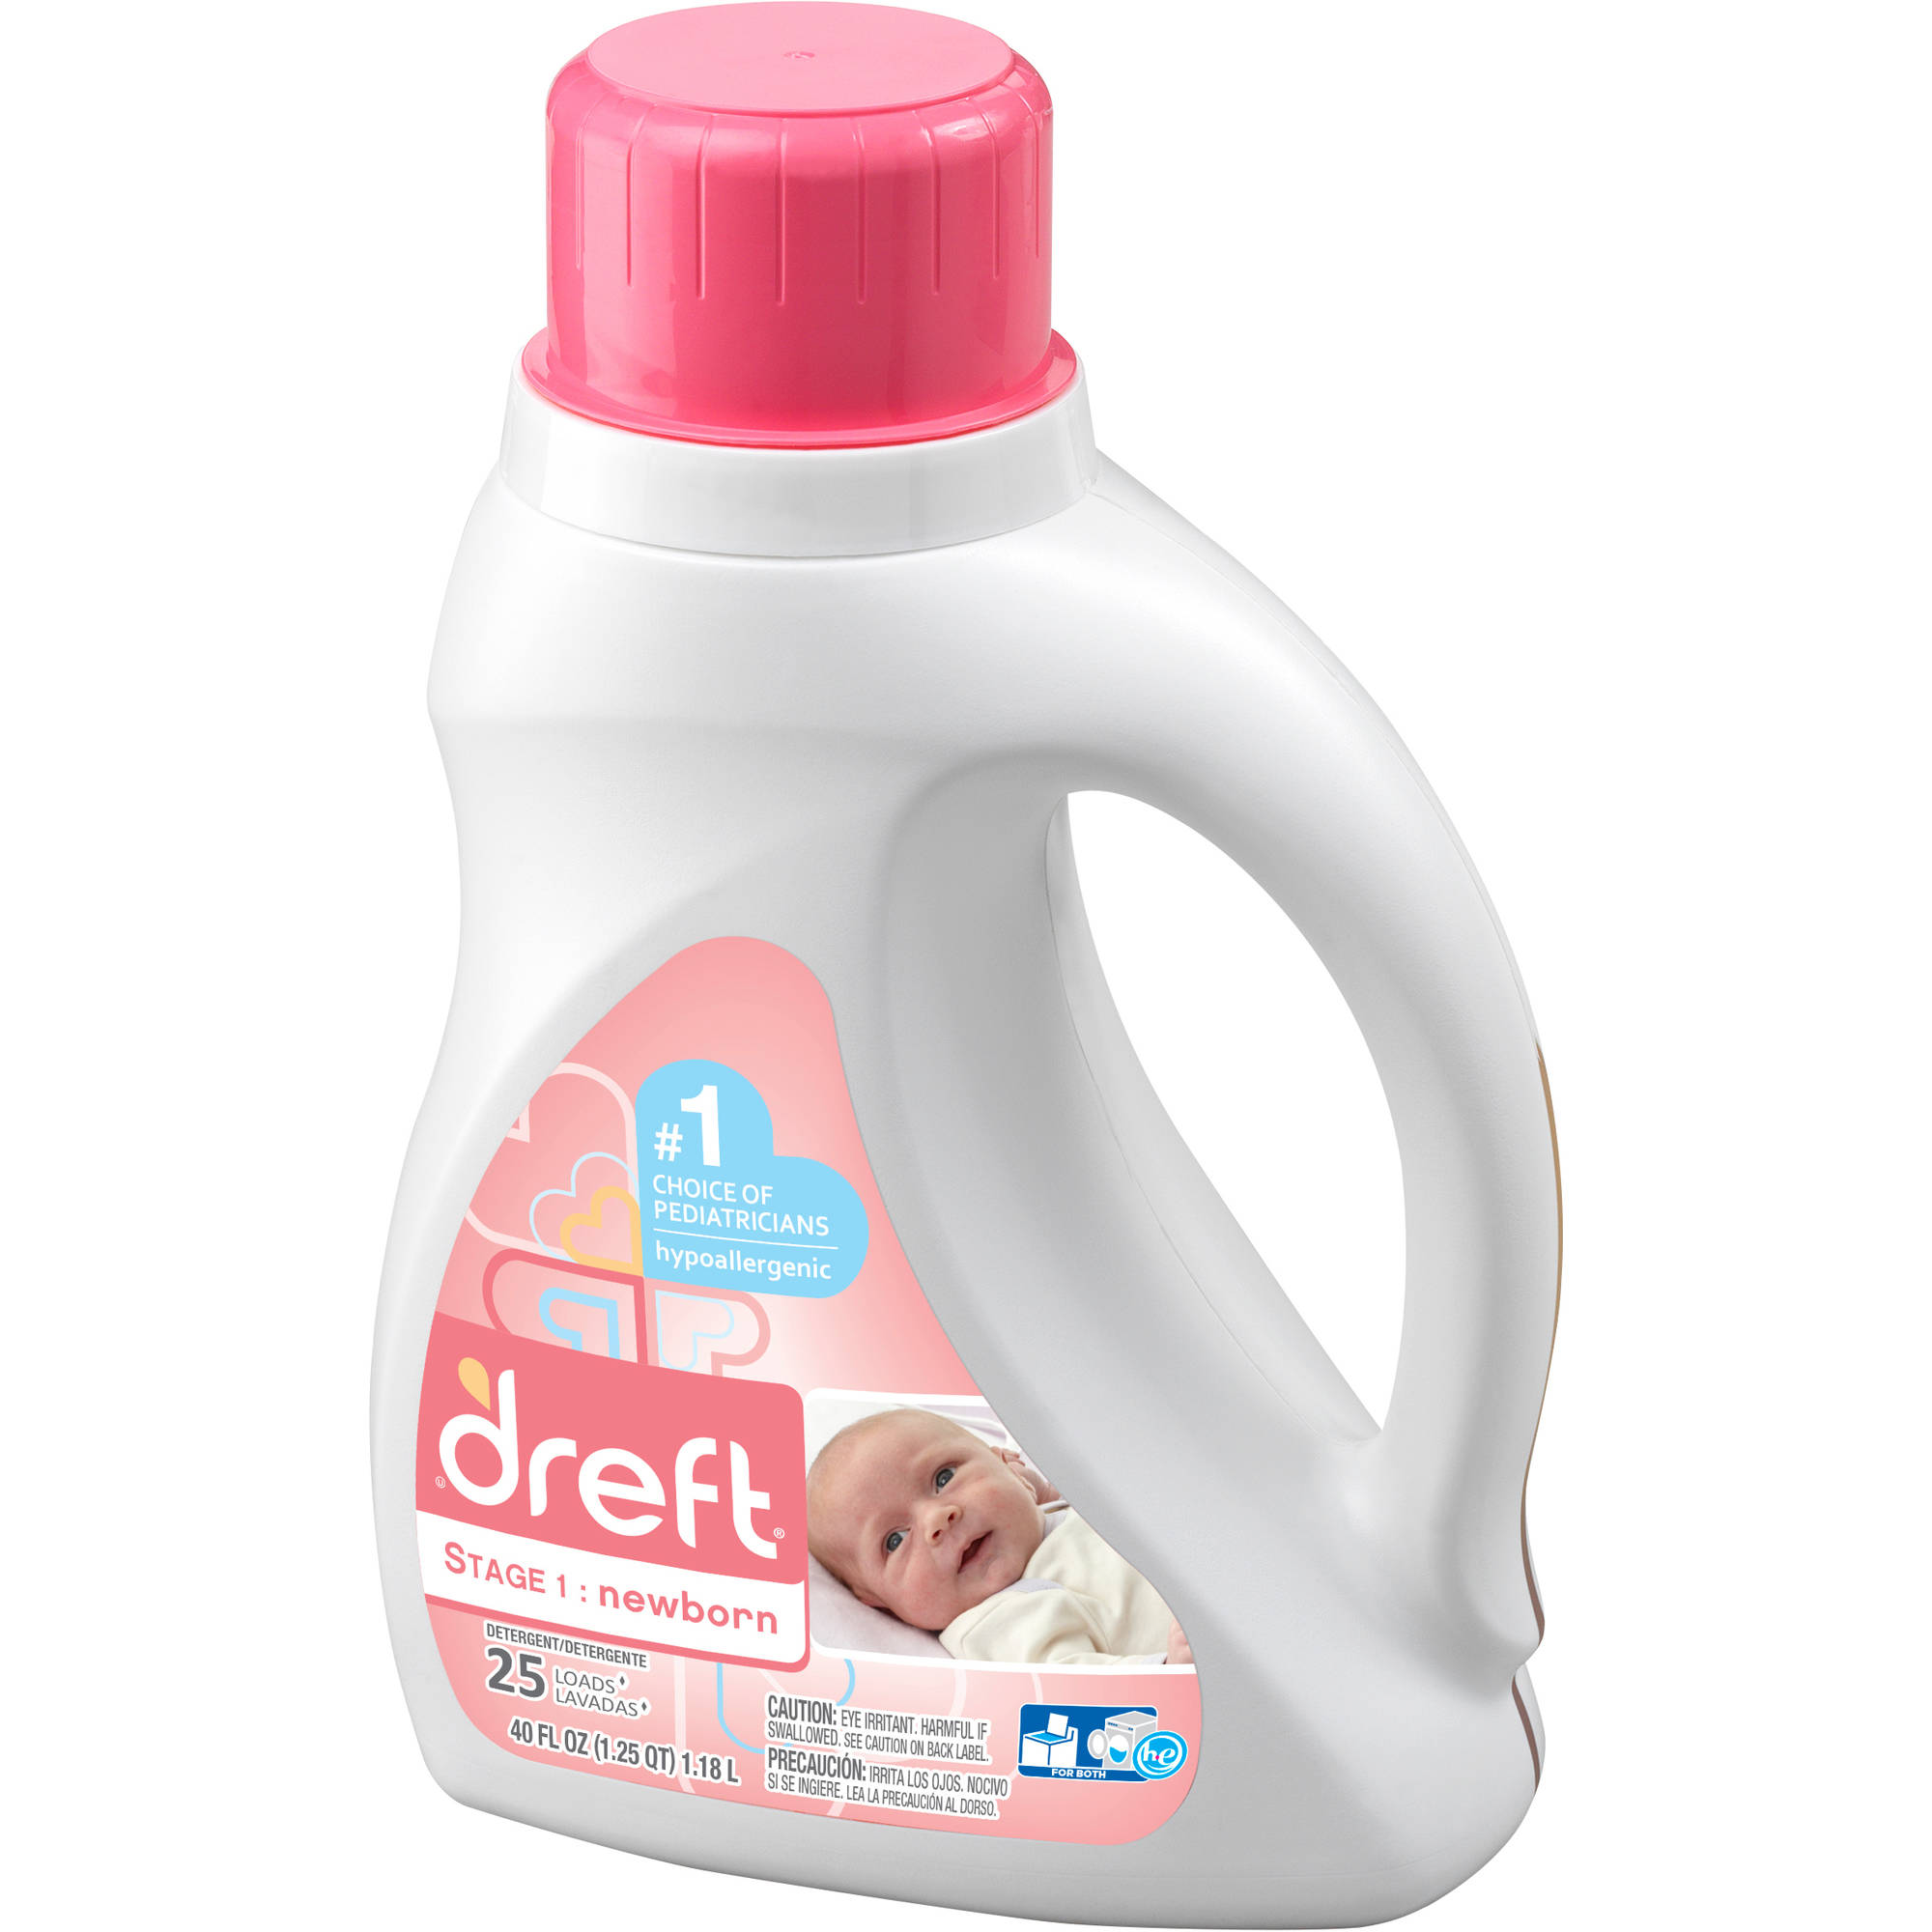 Dreft Stage 1: Newborn Liquid Detergent (HEC): 40 oz, 25 Loads